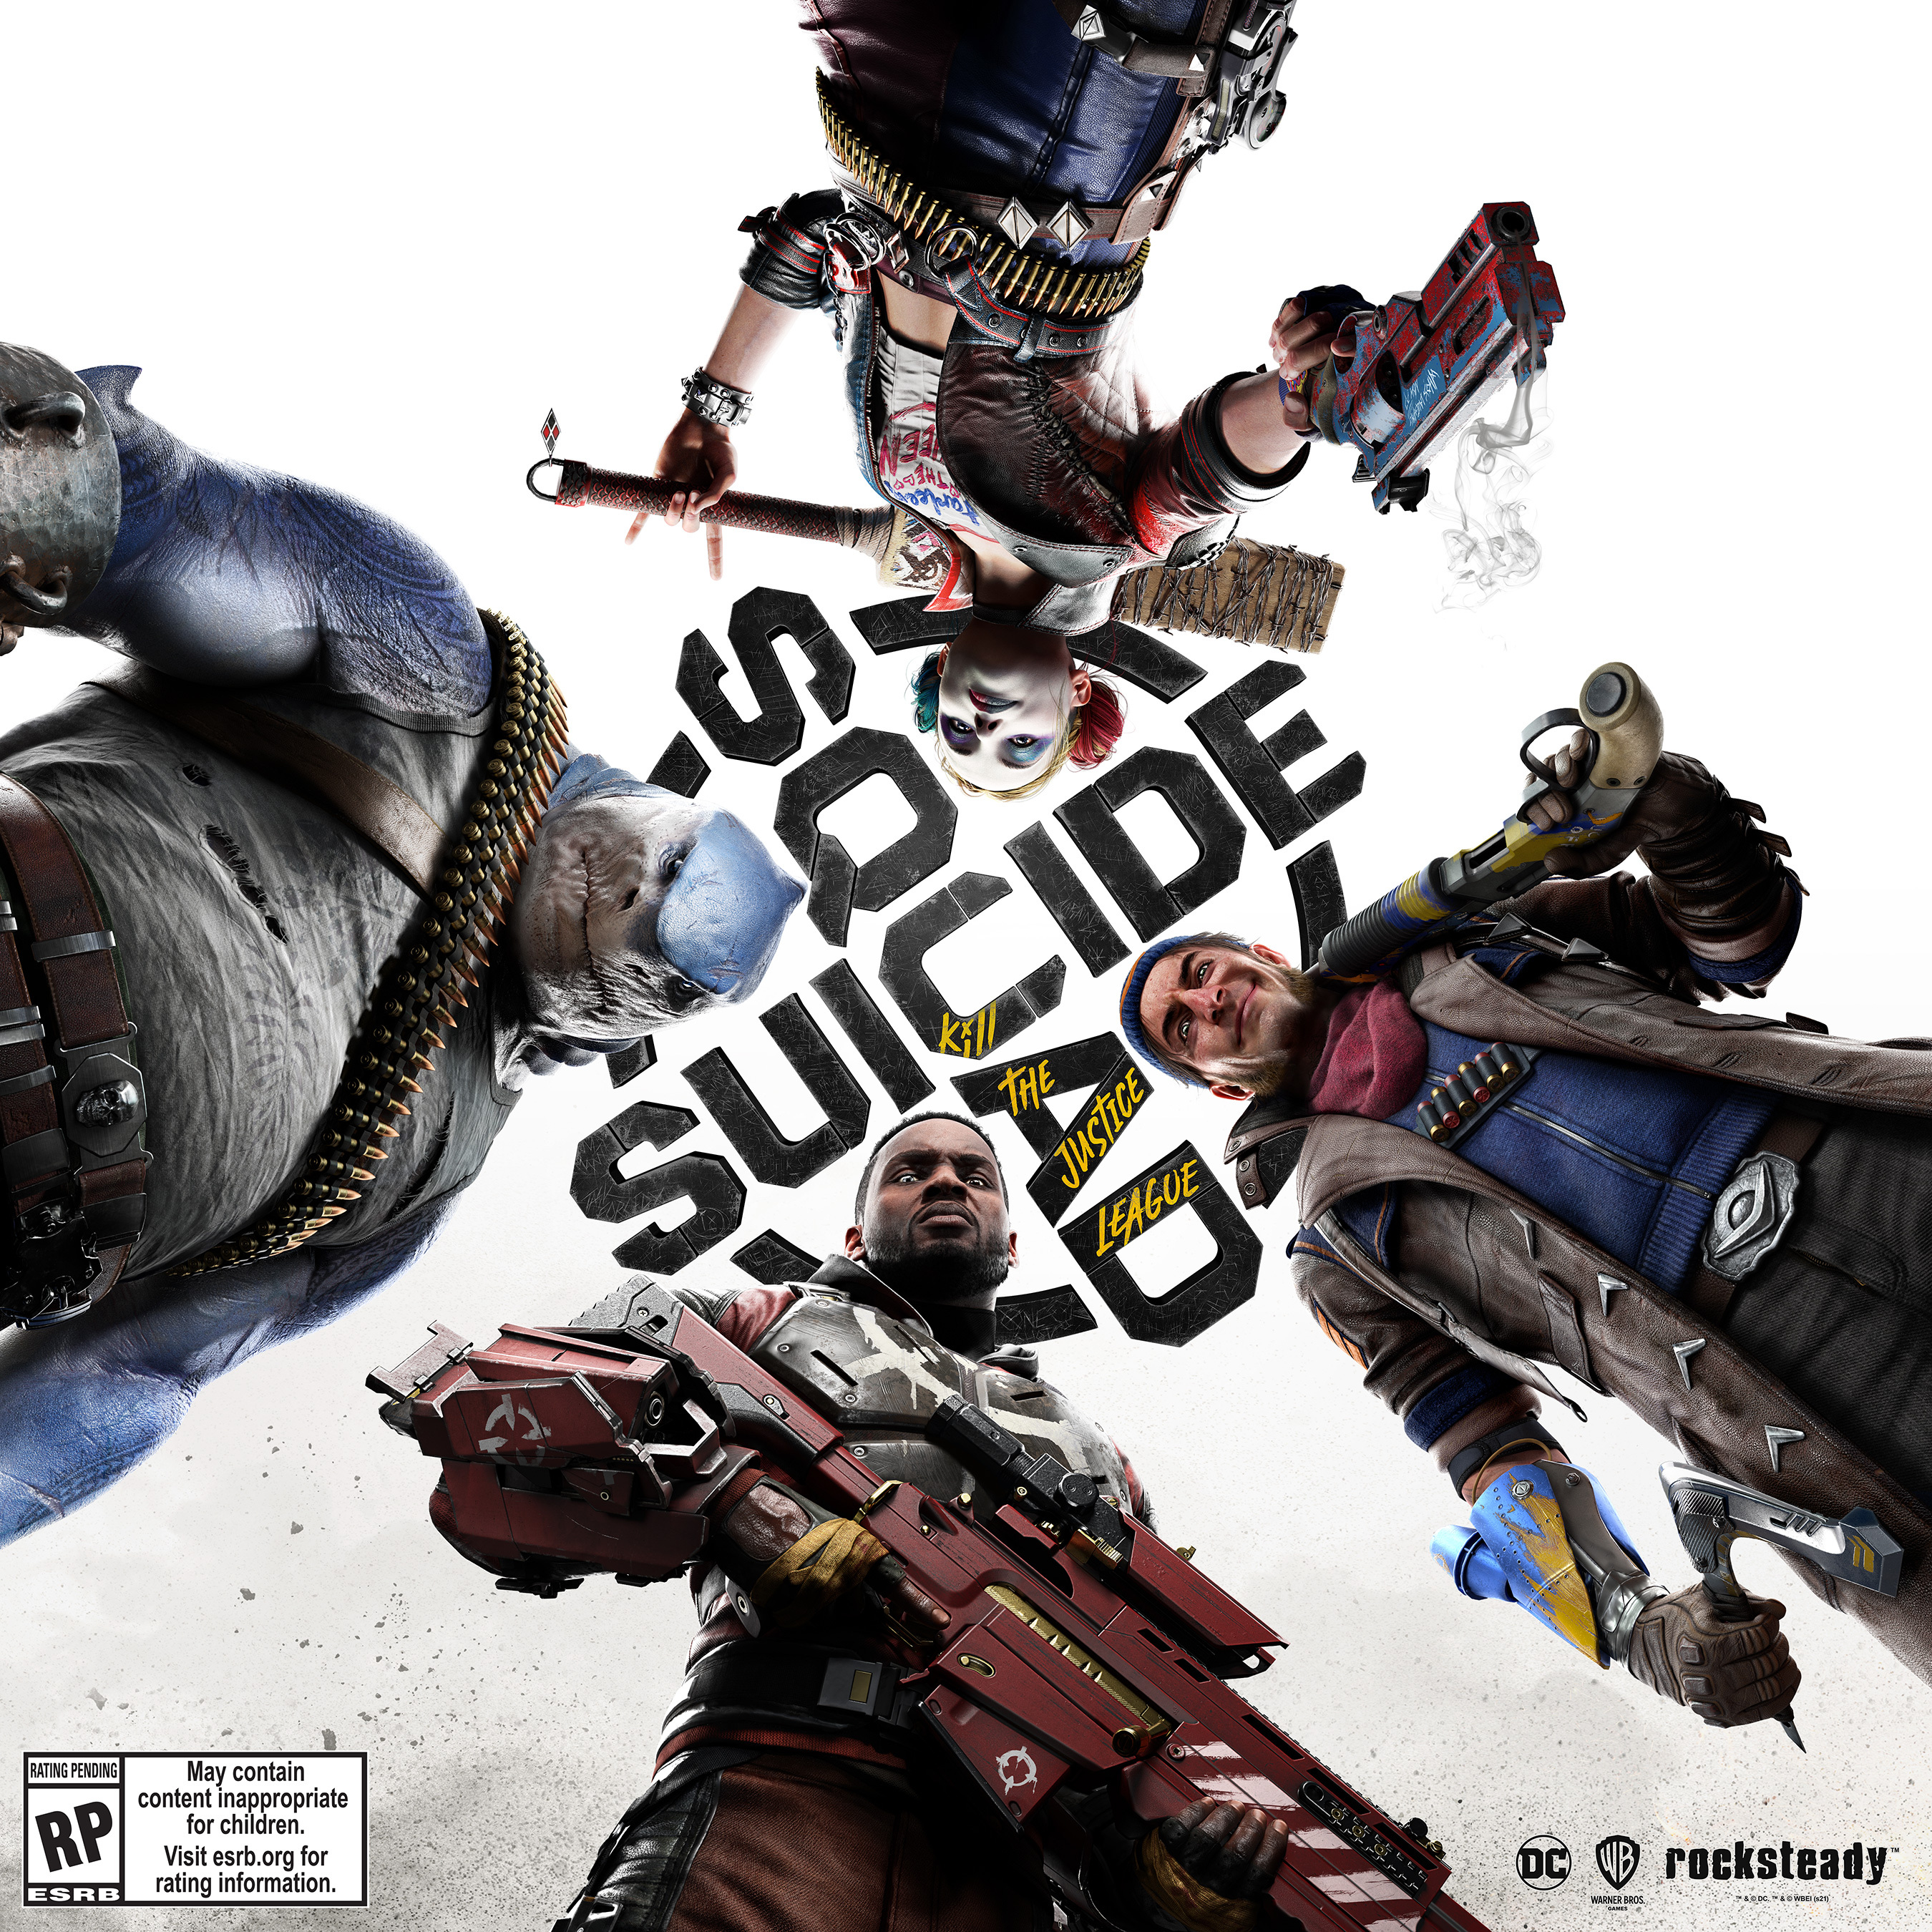 The suicide squad kill the justice league, games, wb games